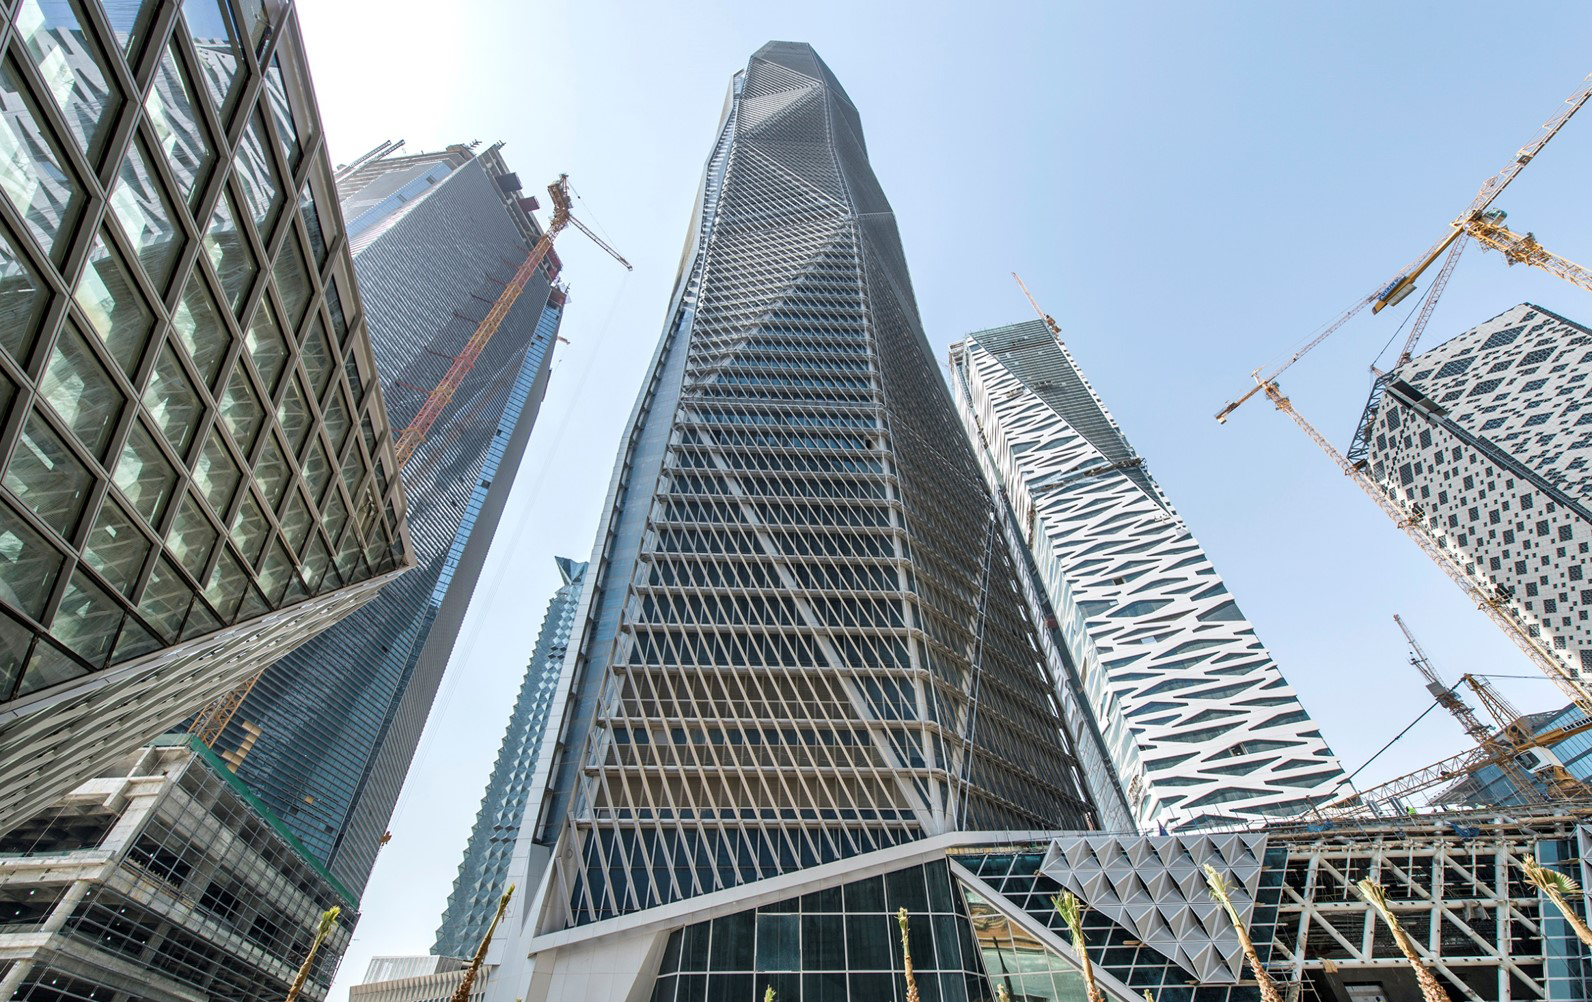 Capital Market Authority Tower Architect Magazine Hok Omrania